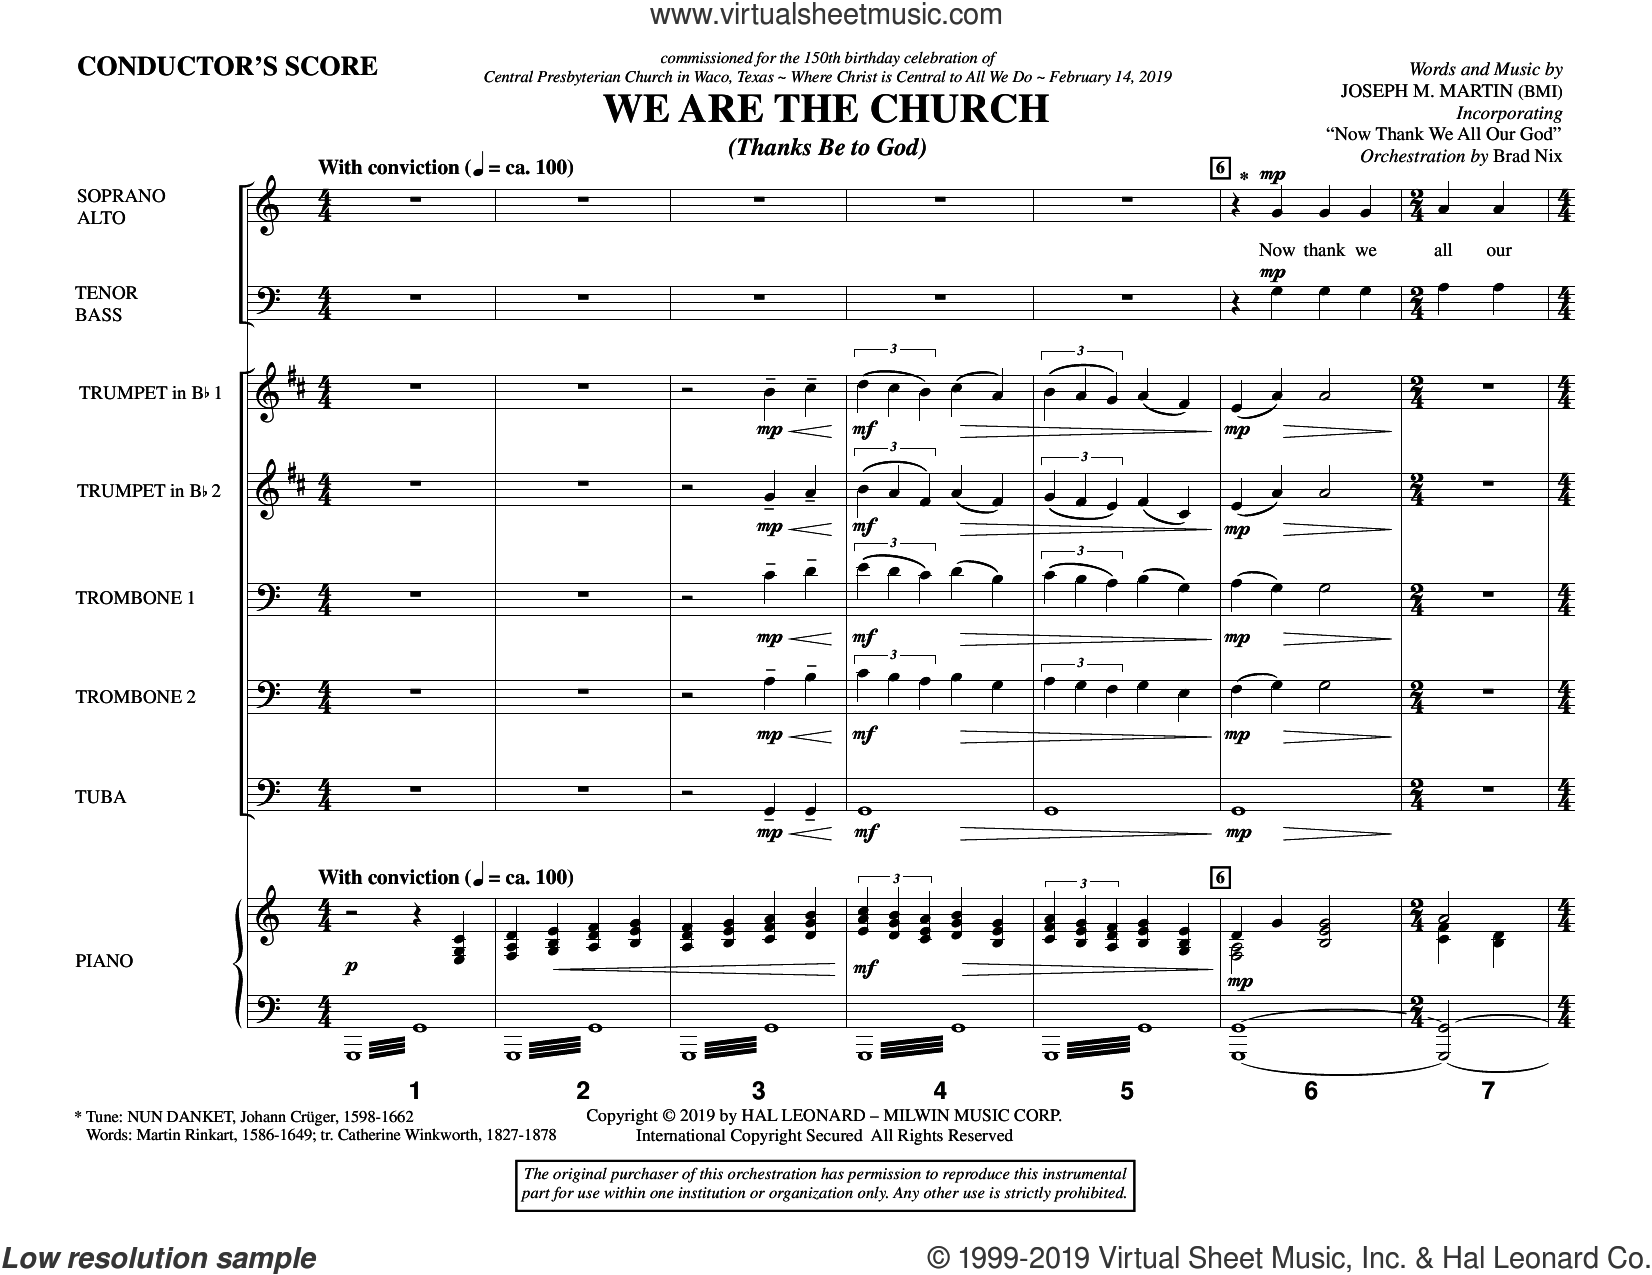 We Are the Church (Thanks Be to God) (COMPLETE) sheet music for orchestra/band by Joseph M. Martin, intermediate skill level